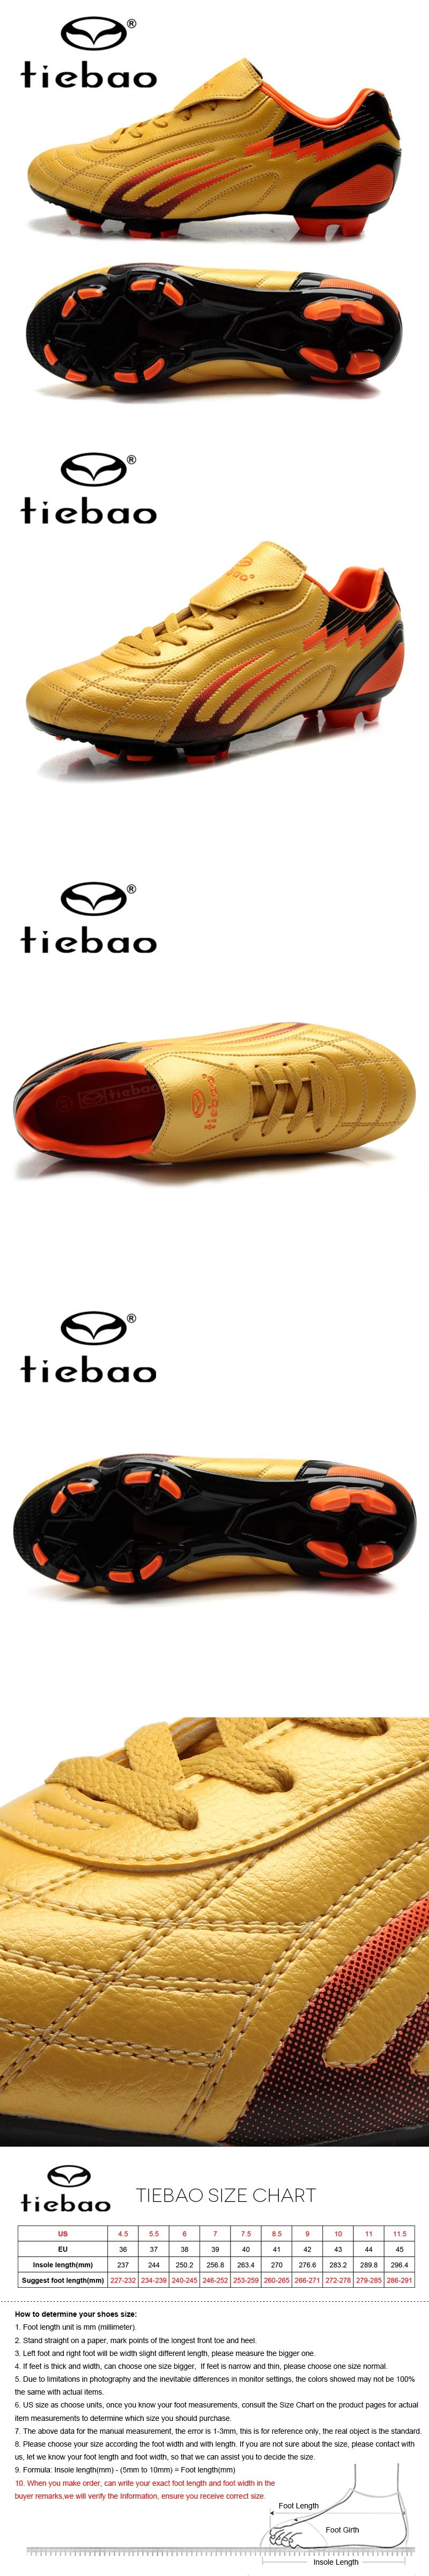 a9ead7e4ebd TIEBAO Professional Unisex Soccer Shoes Football Boots FG   HG Soles Soccer  Cleats For Adult Training